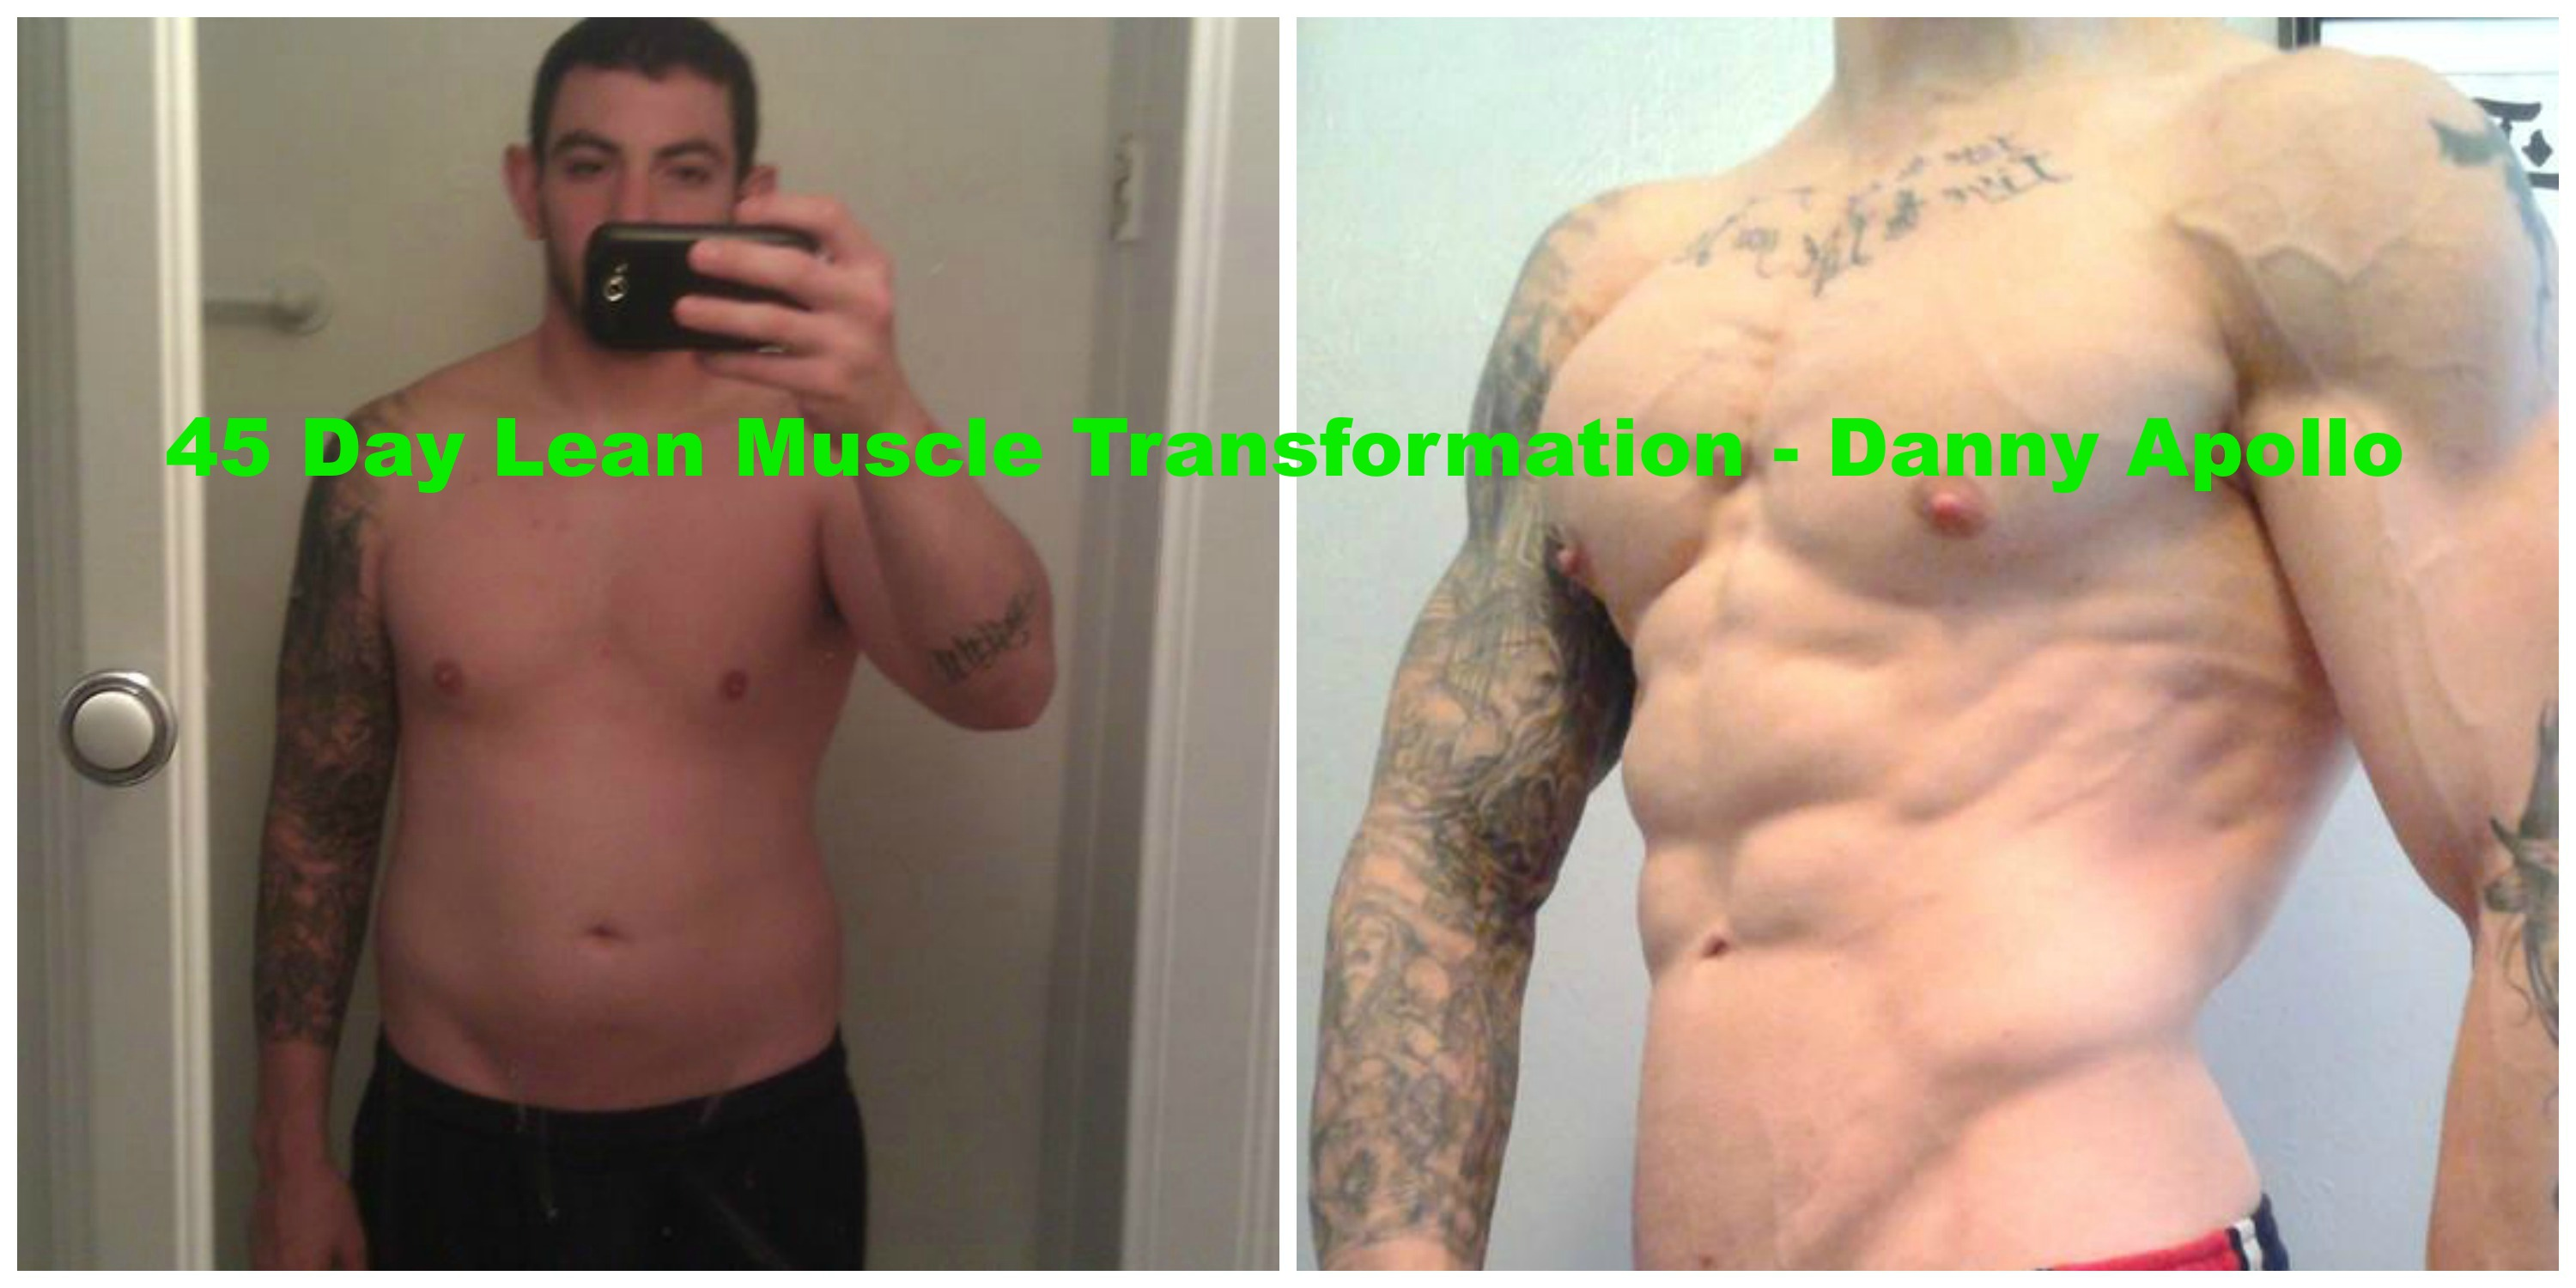 45-day-lean-muscle-jason-transformation